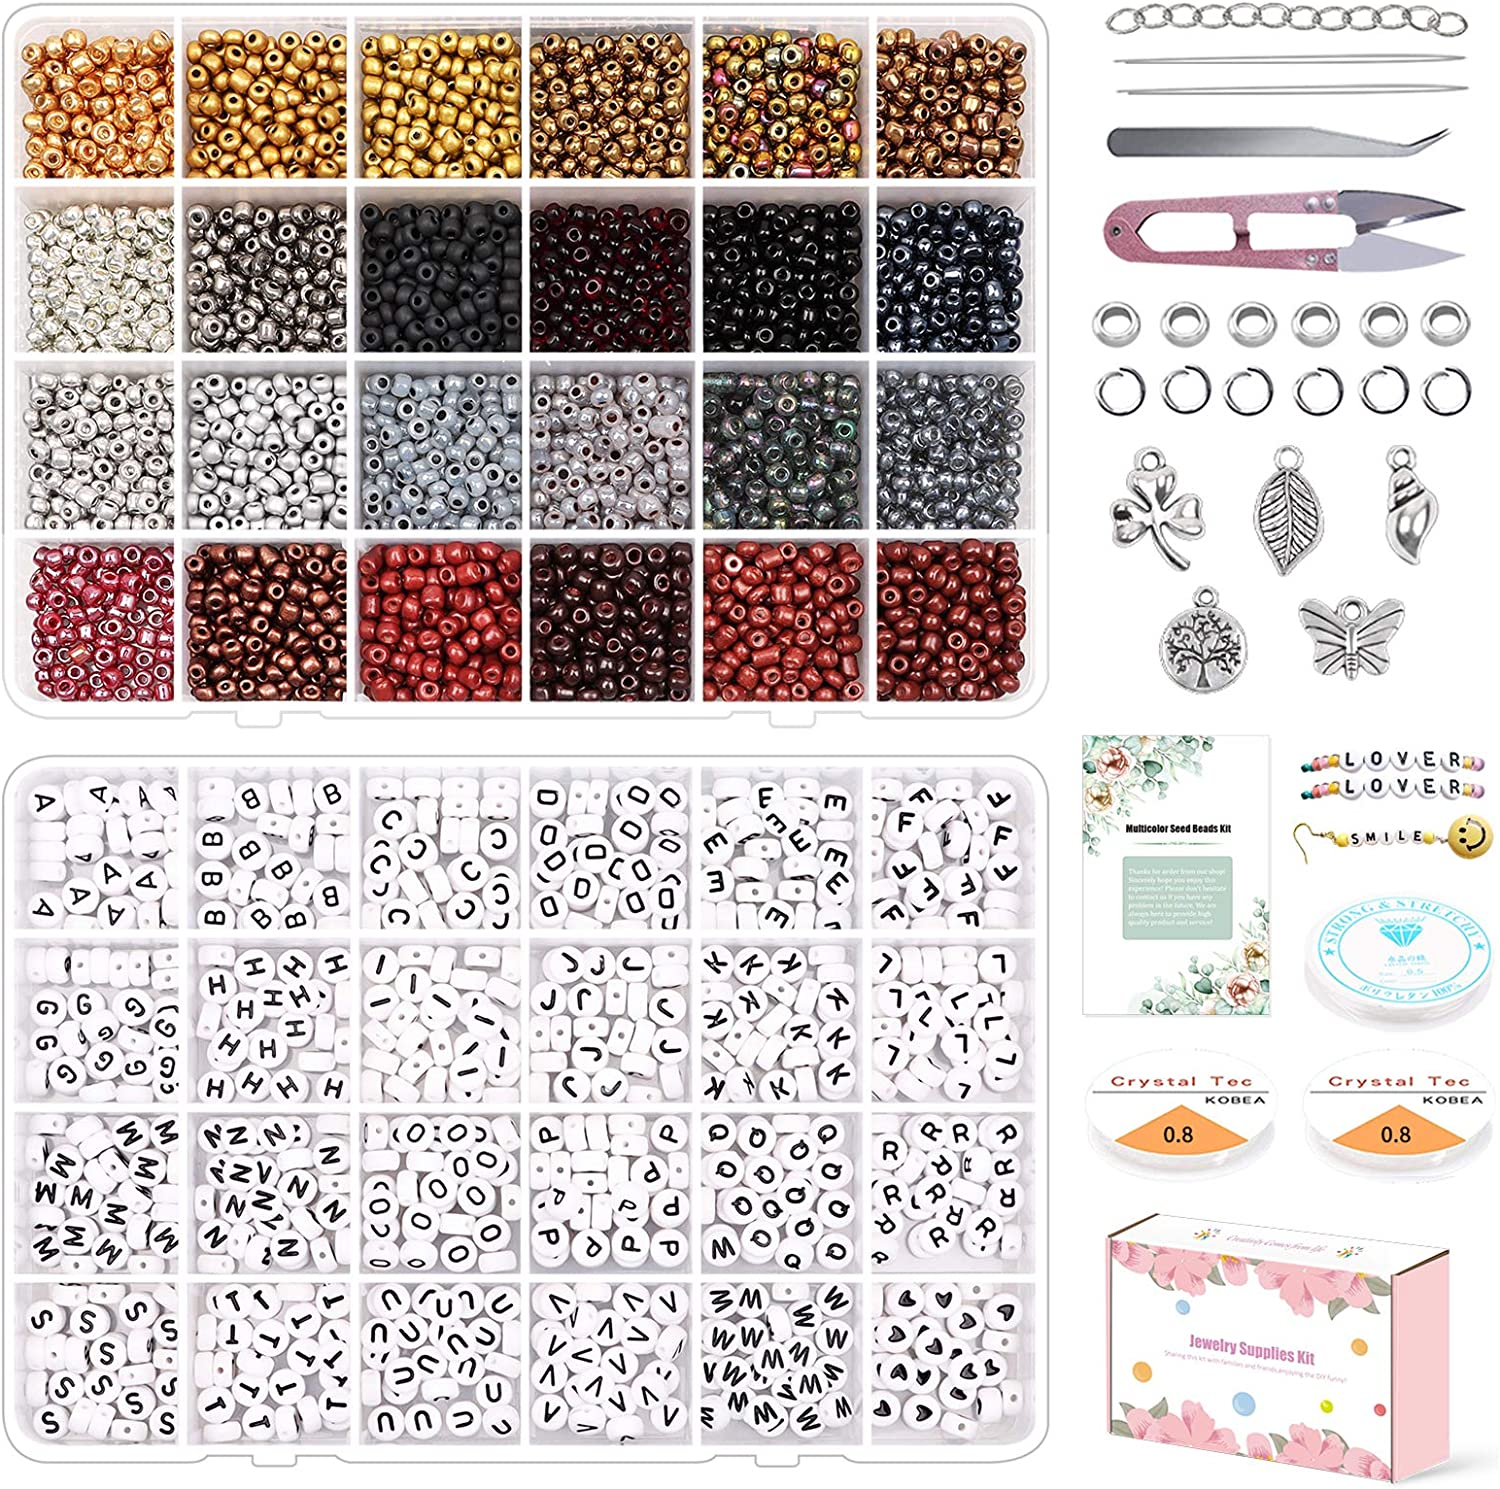 7200pcs Fixed price for sale 4mm Glass Seed Beads Kit 24 Multicolor Pony B Small Manufacturer OFFicial shop